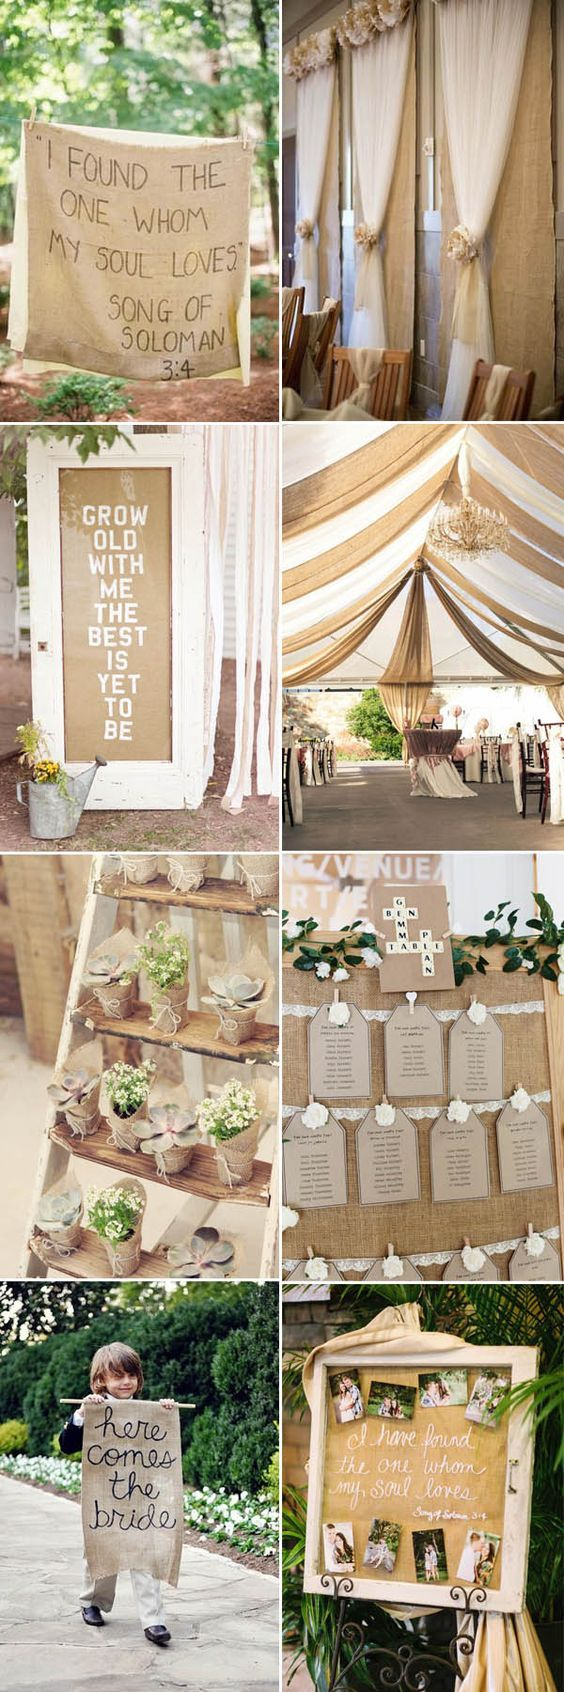 The Most Complete Burlap Rustic Wedding Ideas